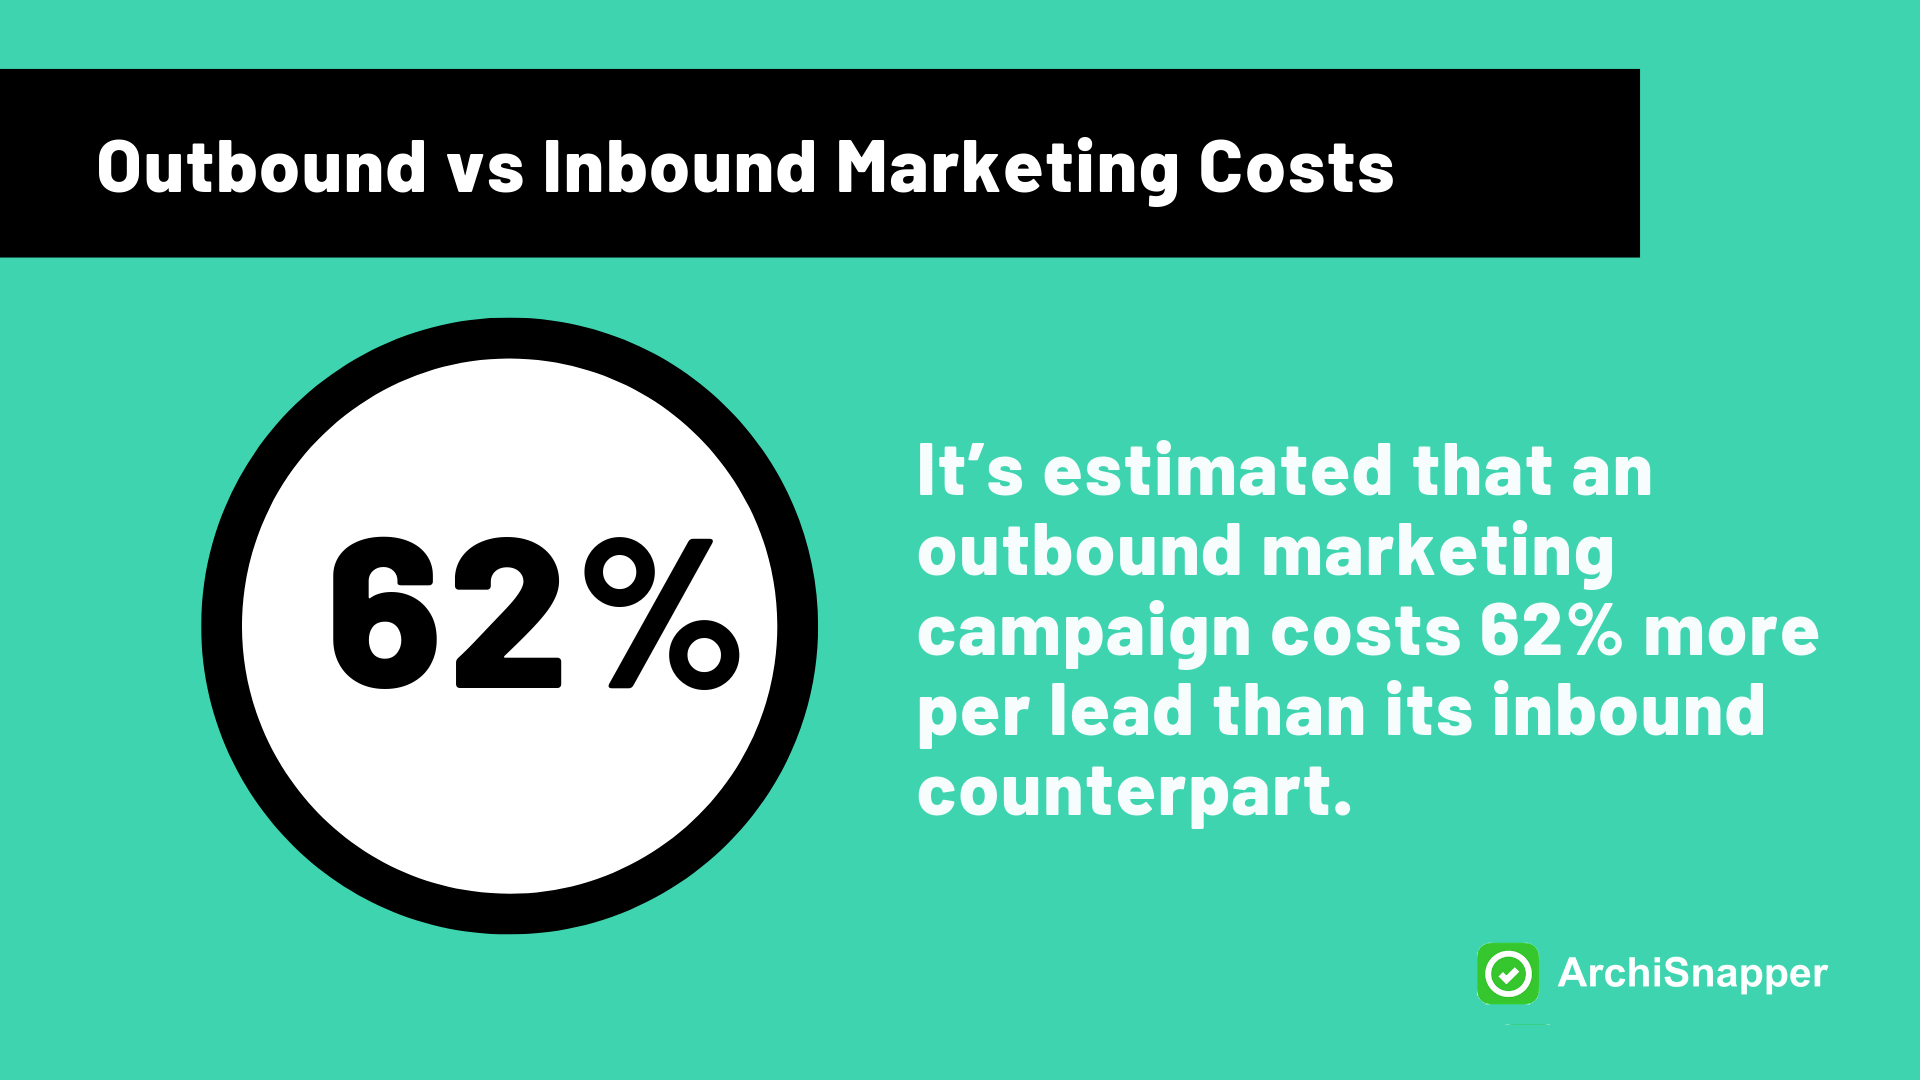 Inbound vs Outbound marketing coss according to HubSpot   Archisnapper